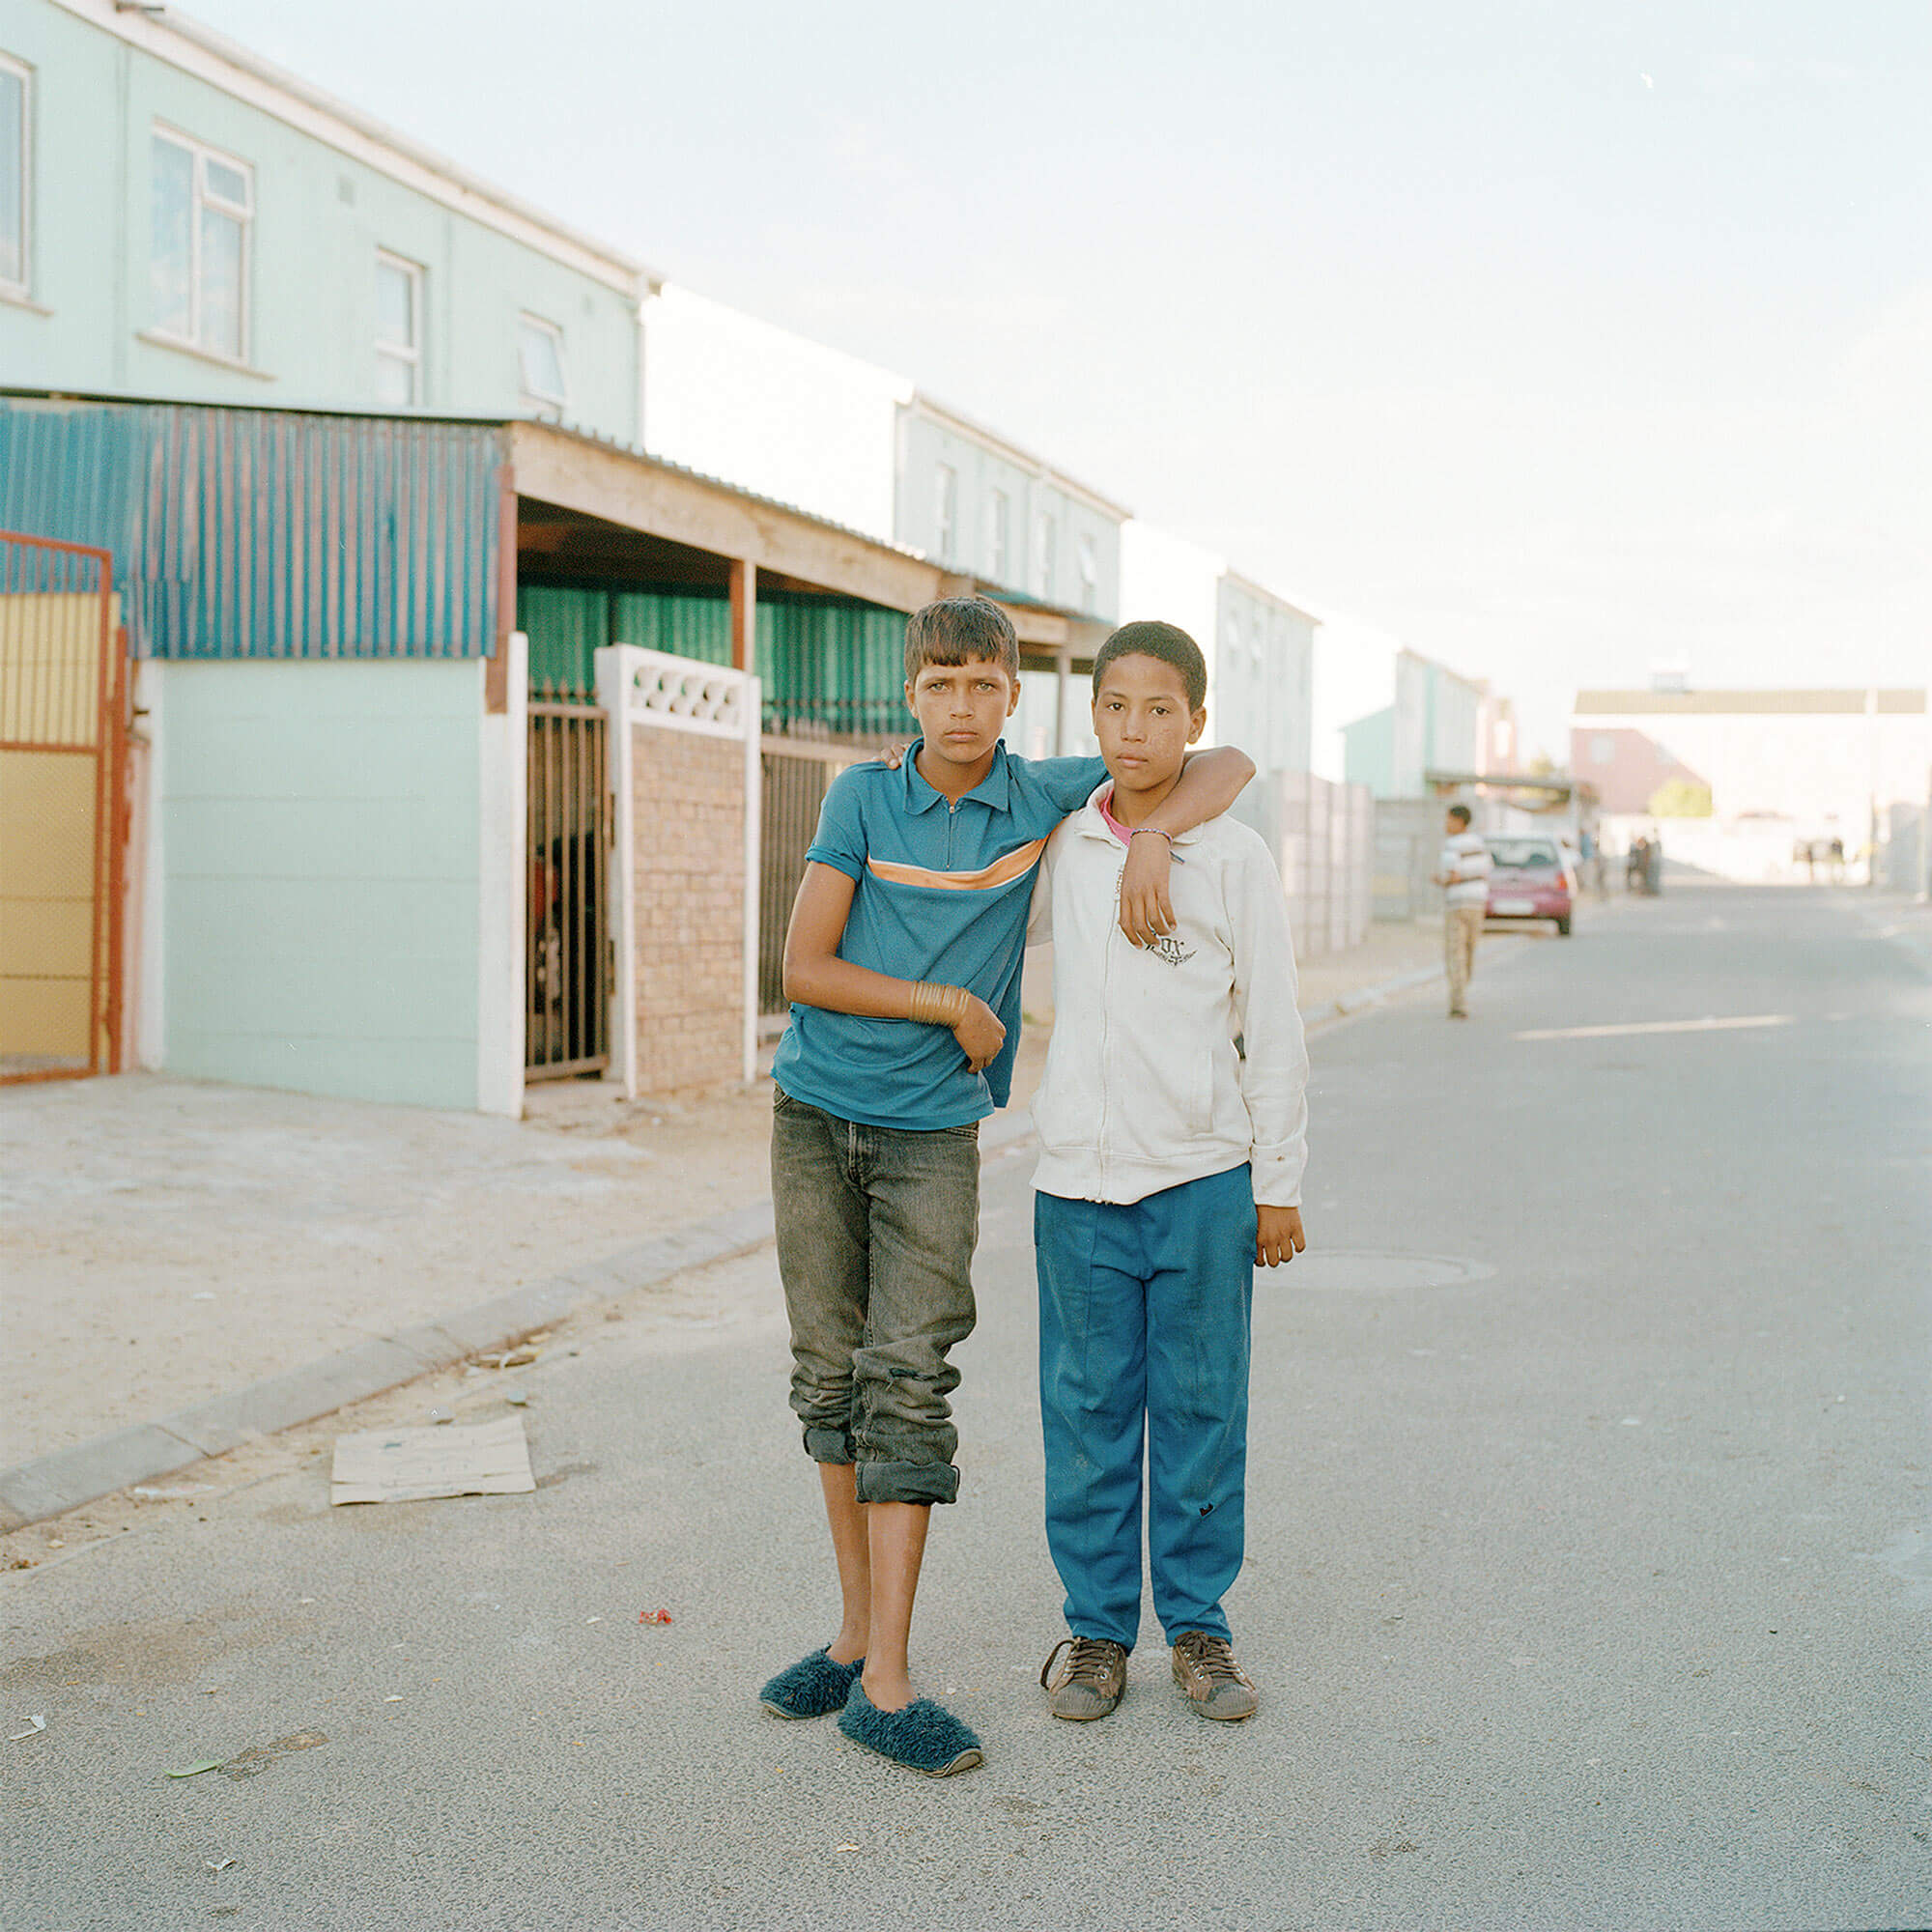 Claudio Rasano SOUTH AFRICA EVERYONE LIVE IN THE SAME PLACE LIKE BEFORE portrait of two boys